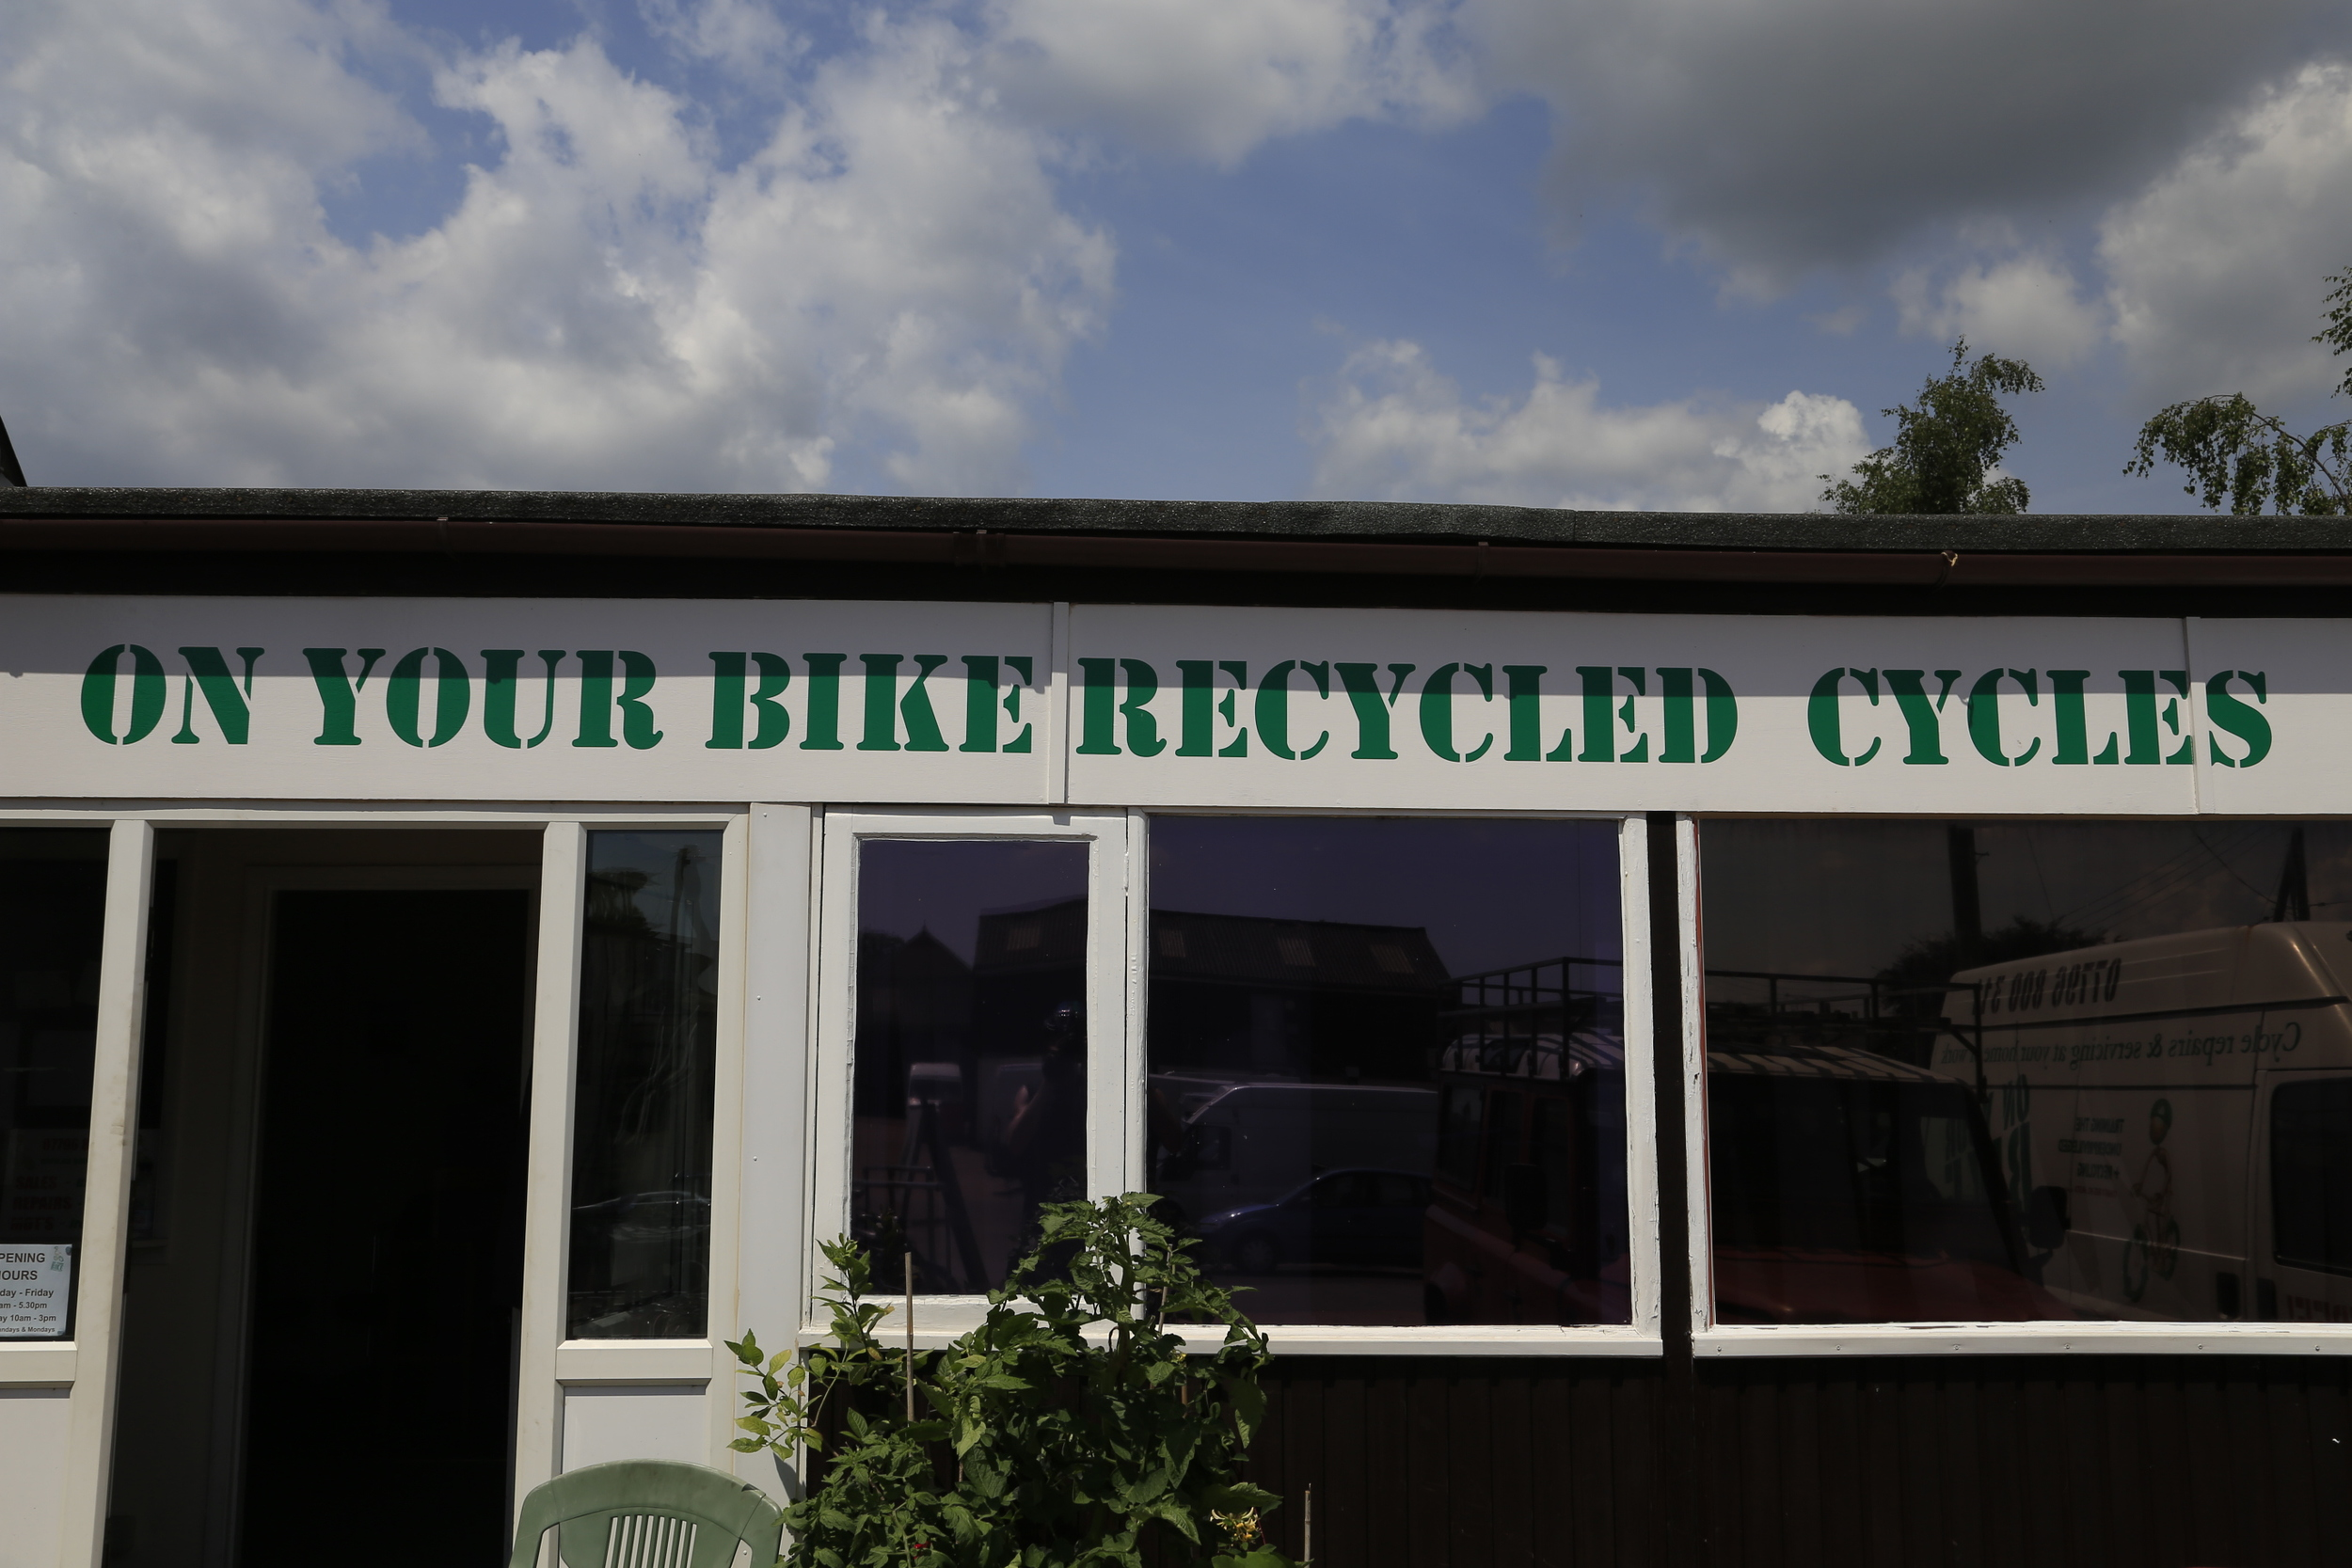 bike shop, youth centre, charity, cycle, bike gear, cycling